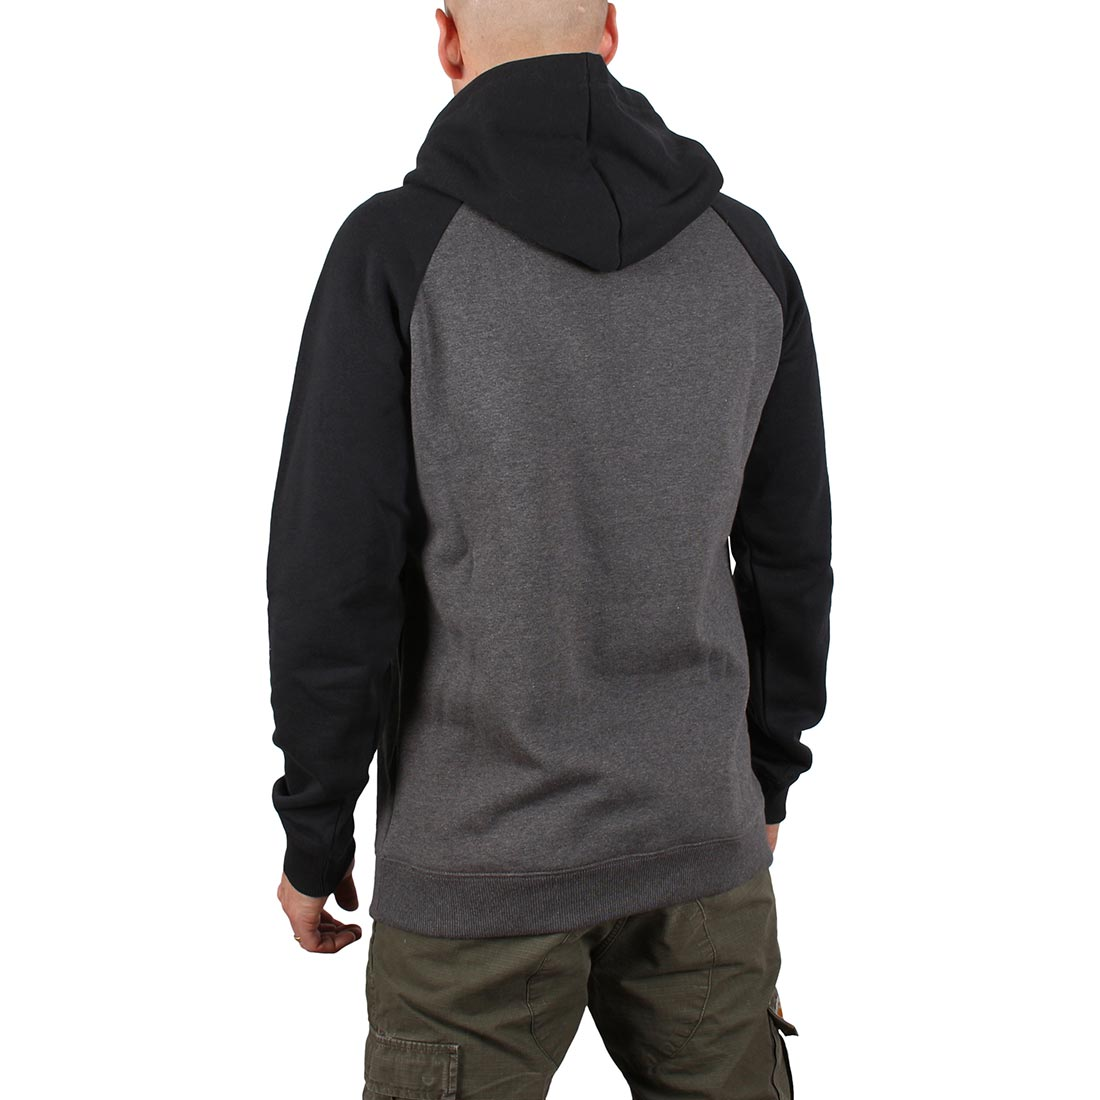 DC Shoes Circle Star Pullover Hoodie - Black / Charcoal